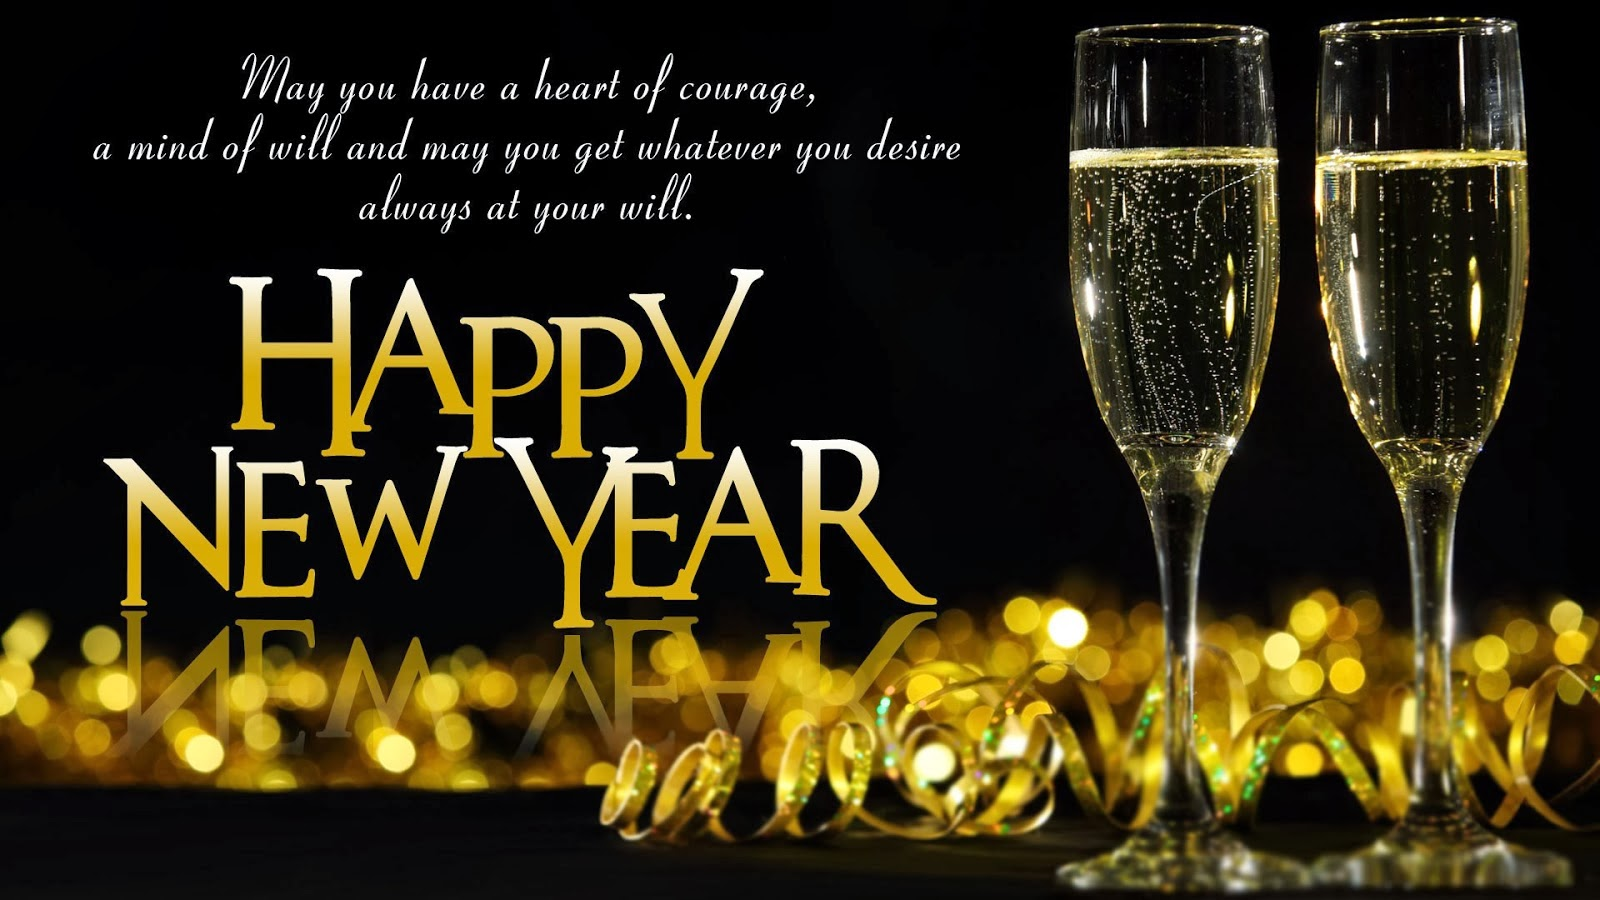 Cool New Year 2015 Quotes HD Images 1600x900